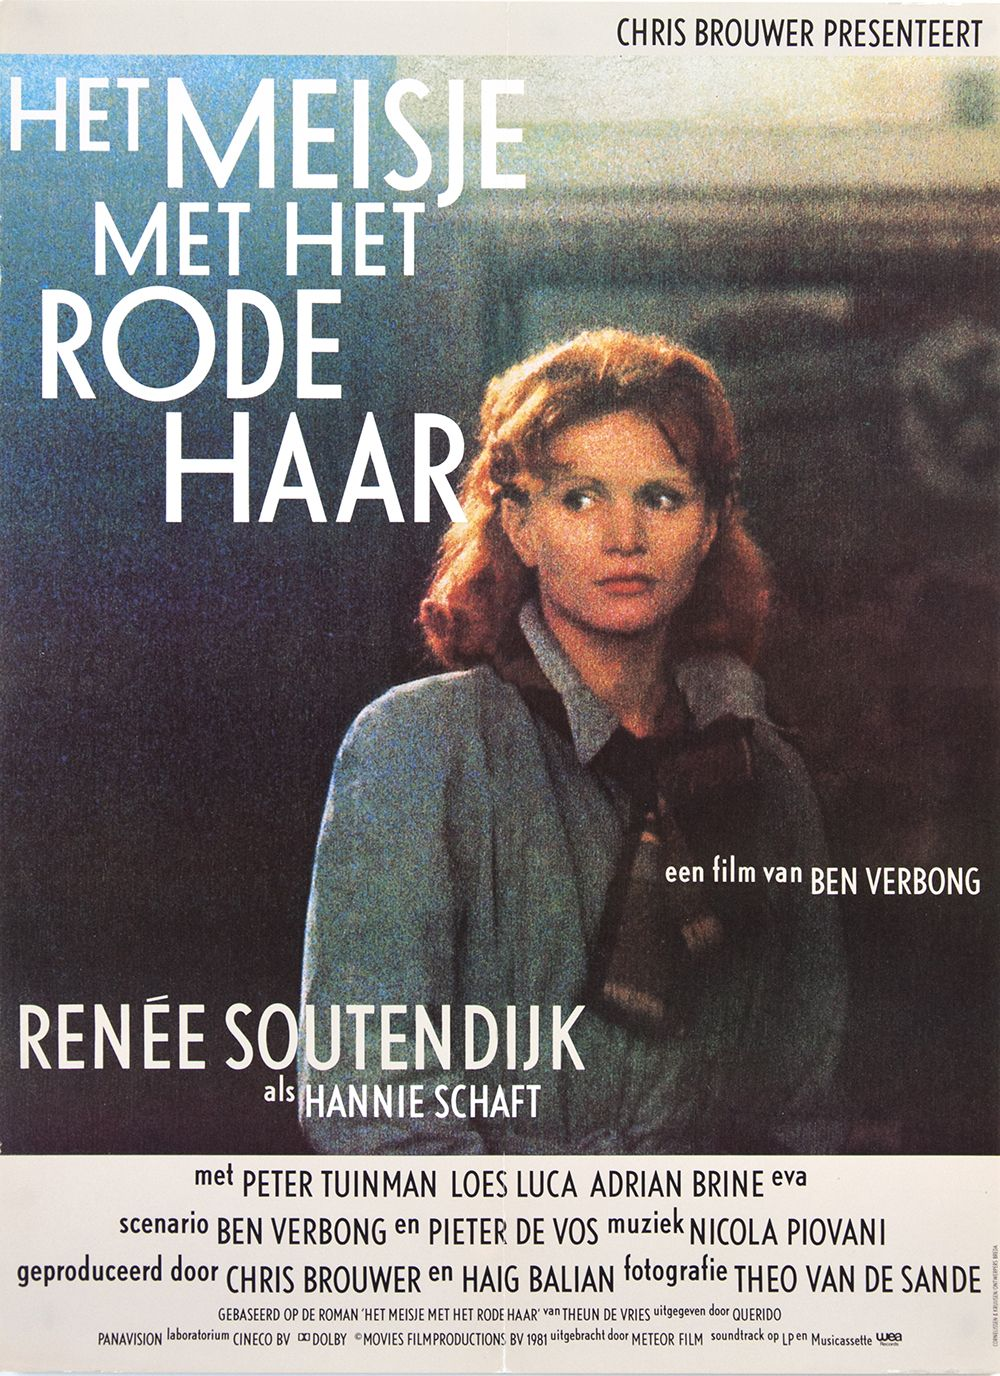 A Year of Spy Films 199/365 Het meisje met het rode haar (1981 Netherlands) aka The Girl With Red Hair The International Spy Film Guide Score: 8/10 #isfg #spyfilmguide #assassin #resistance #spymovie #spyfilm #ww2 #reneesoutendijk #netherlands https://www.kisskisskillkillarchive.com